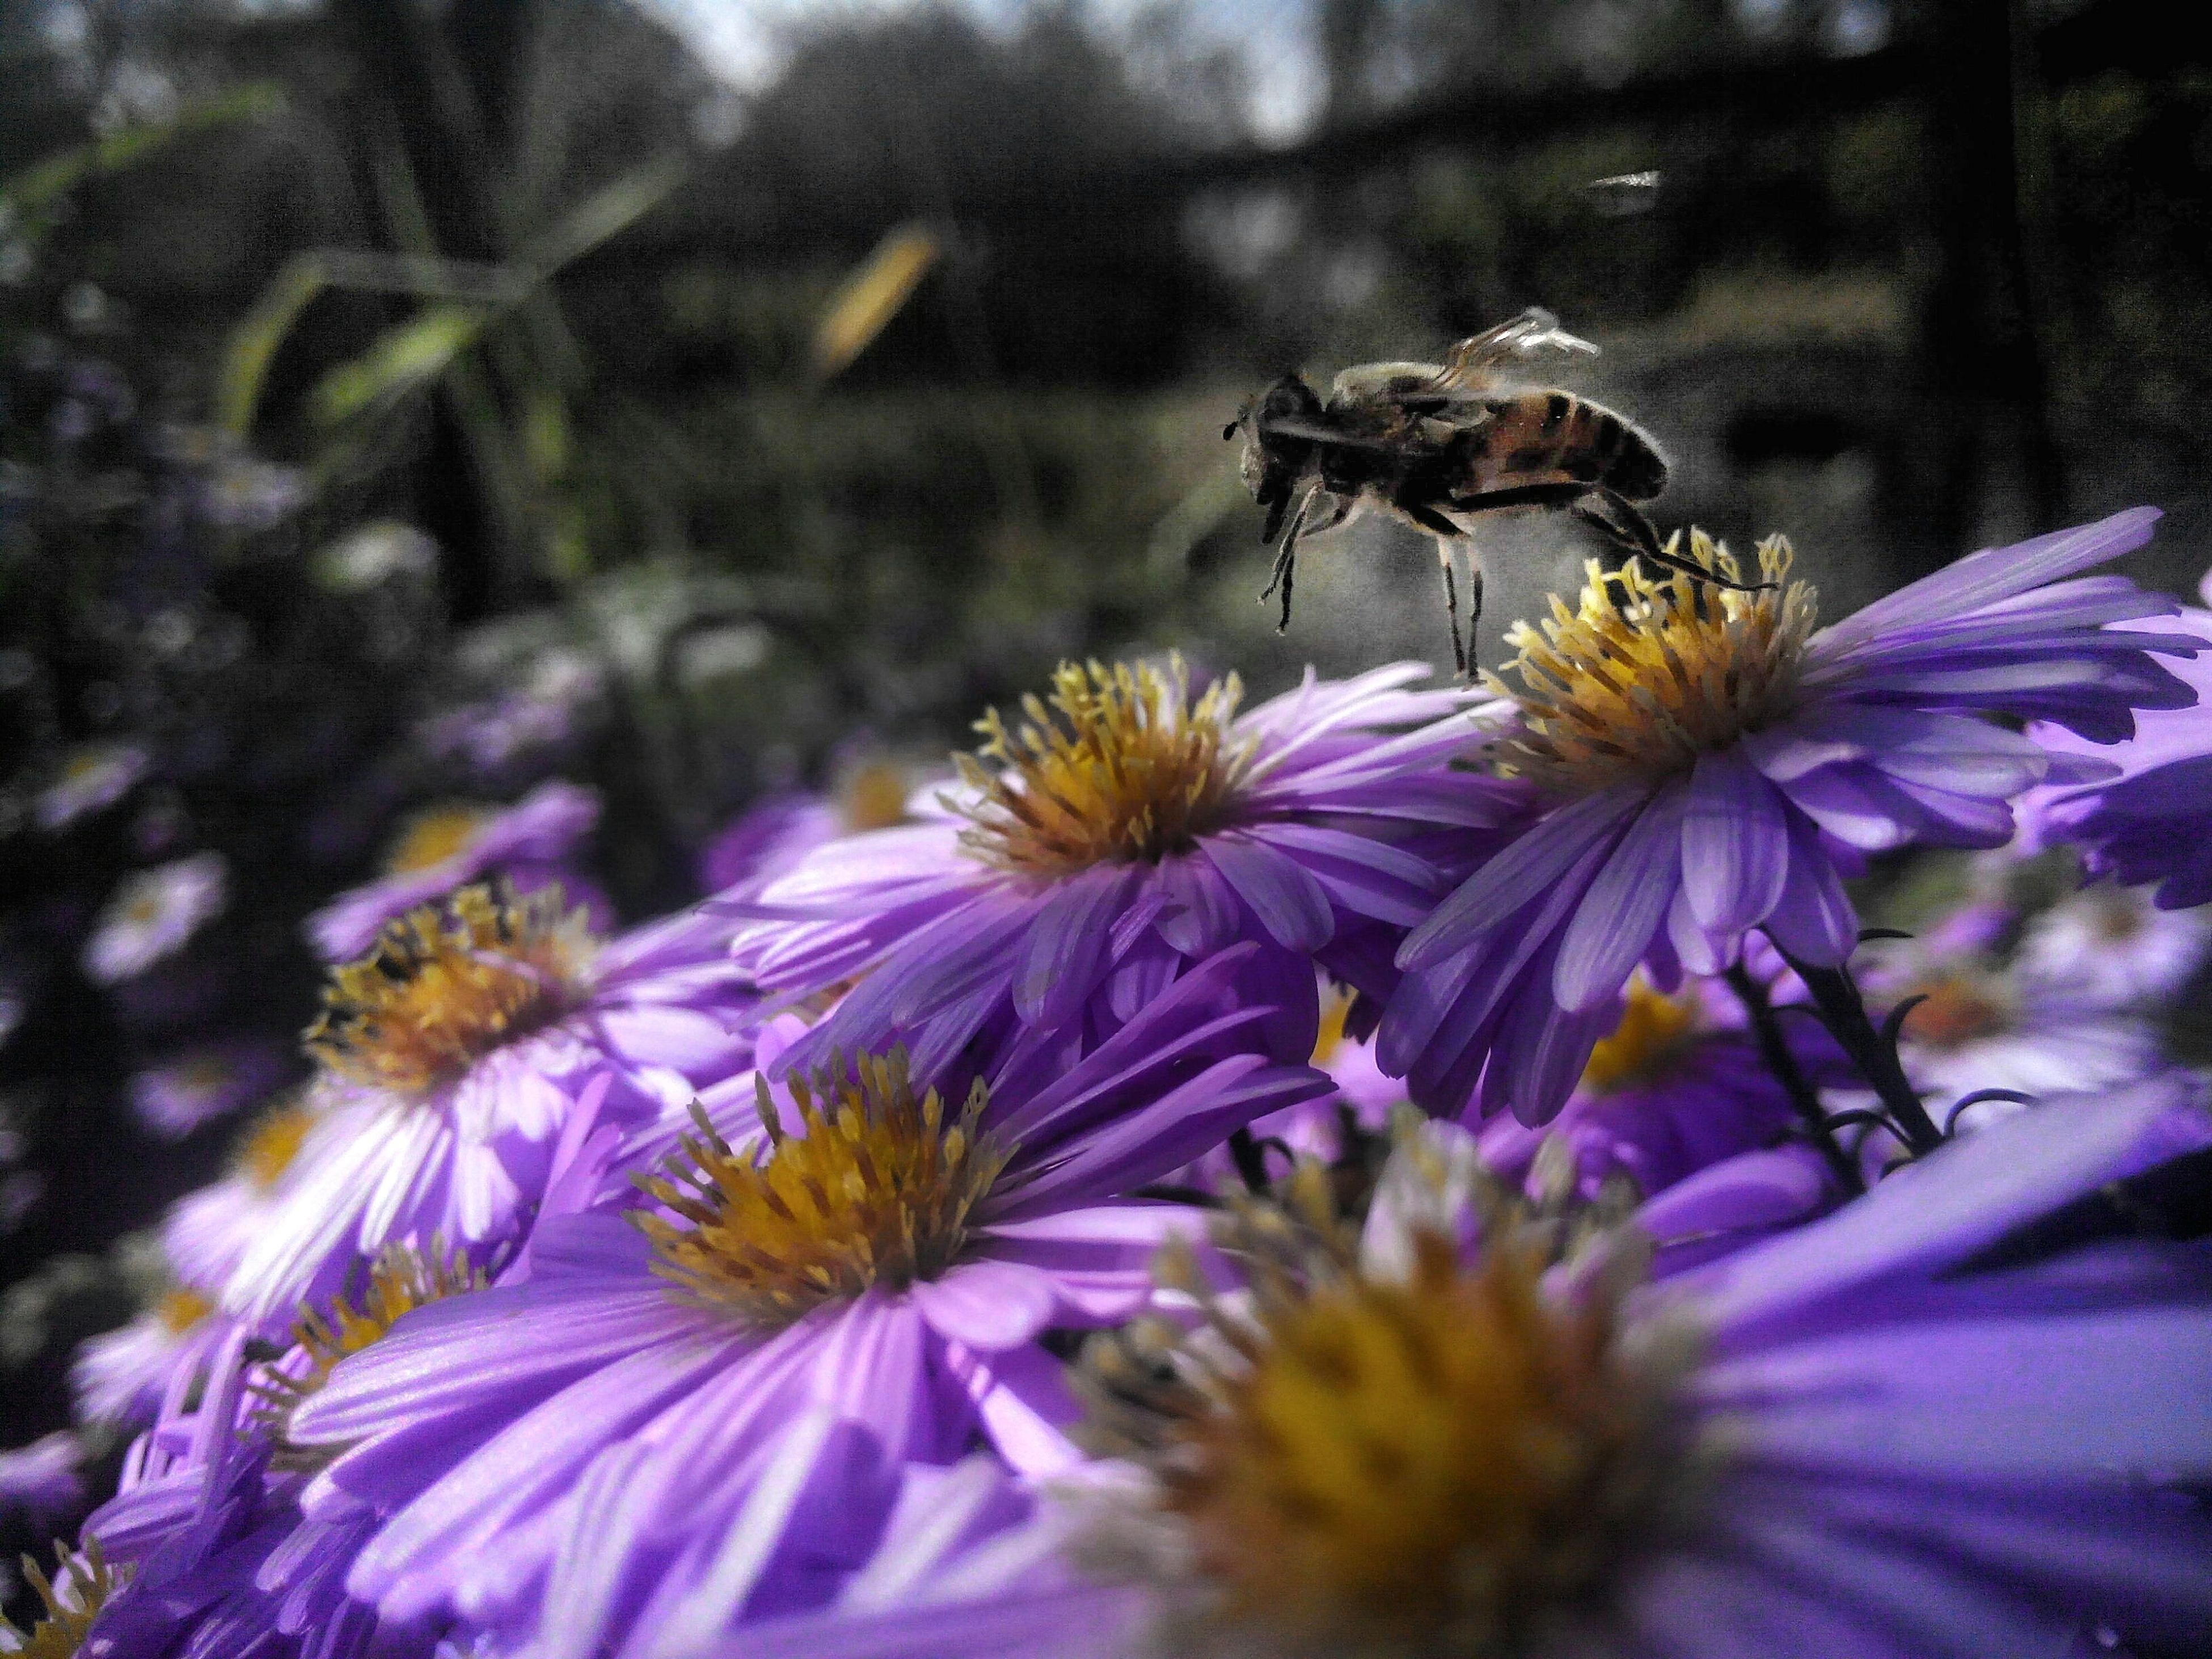 flower, freshness, nature, beauty in nature, fragility, animal themes, animals in the wild, purple, insect, one animal, petal, growth, symbiotic relationship, plant, pollination, animal wildlife, bee, blooming, flower head, no people, close-up, outdoors, day